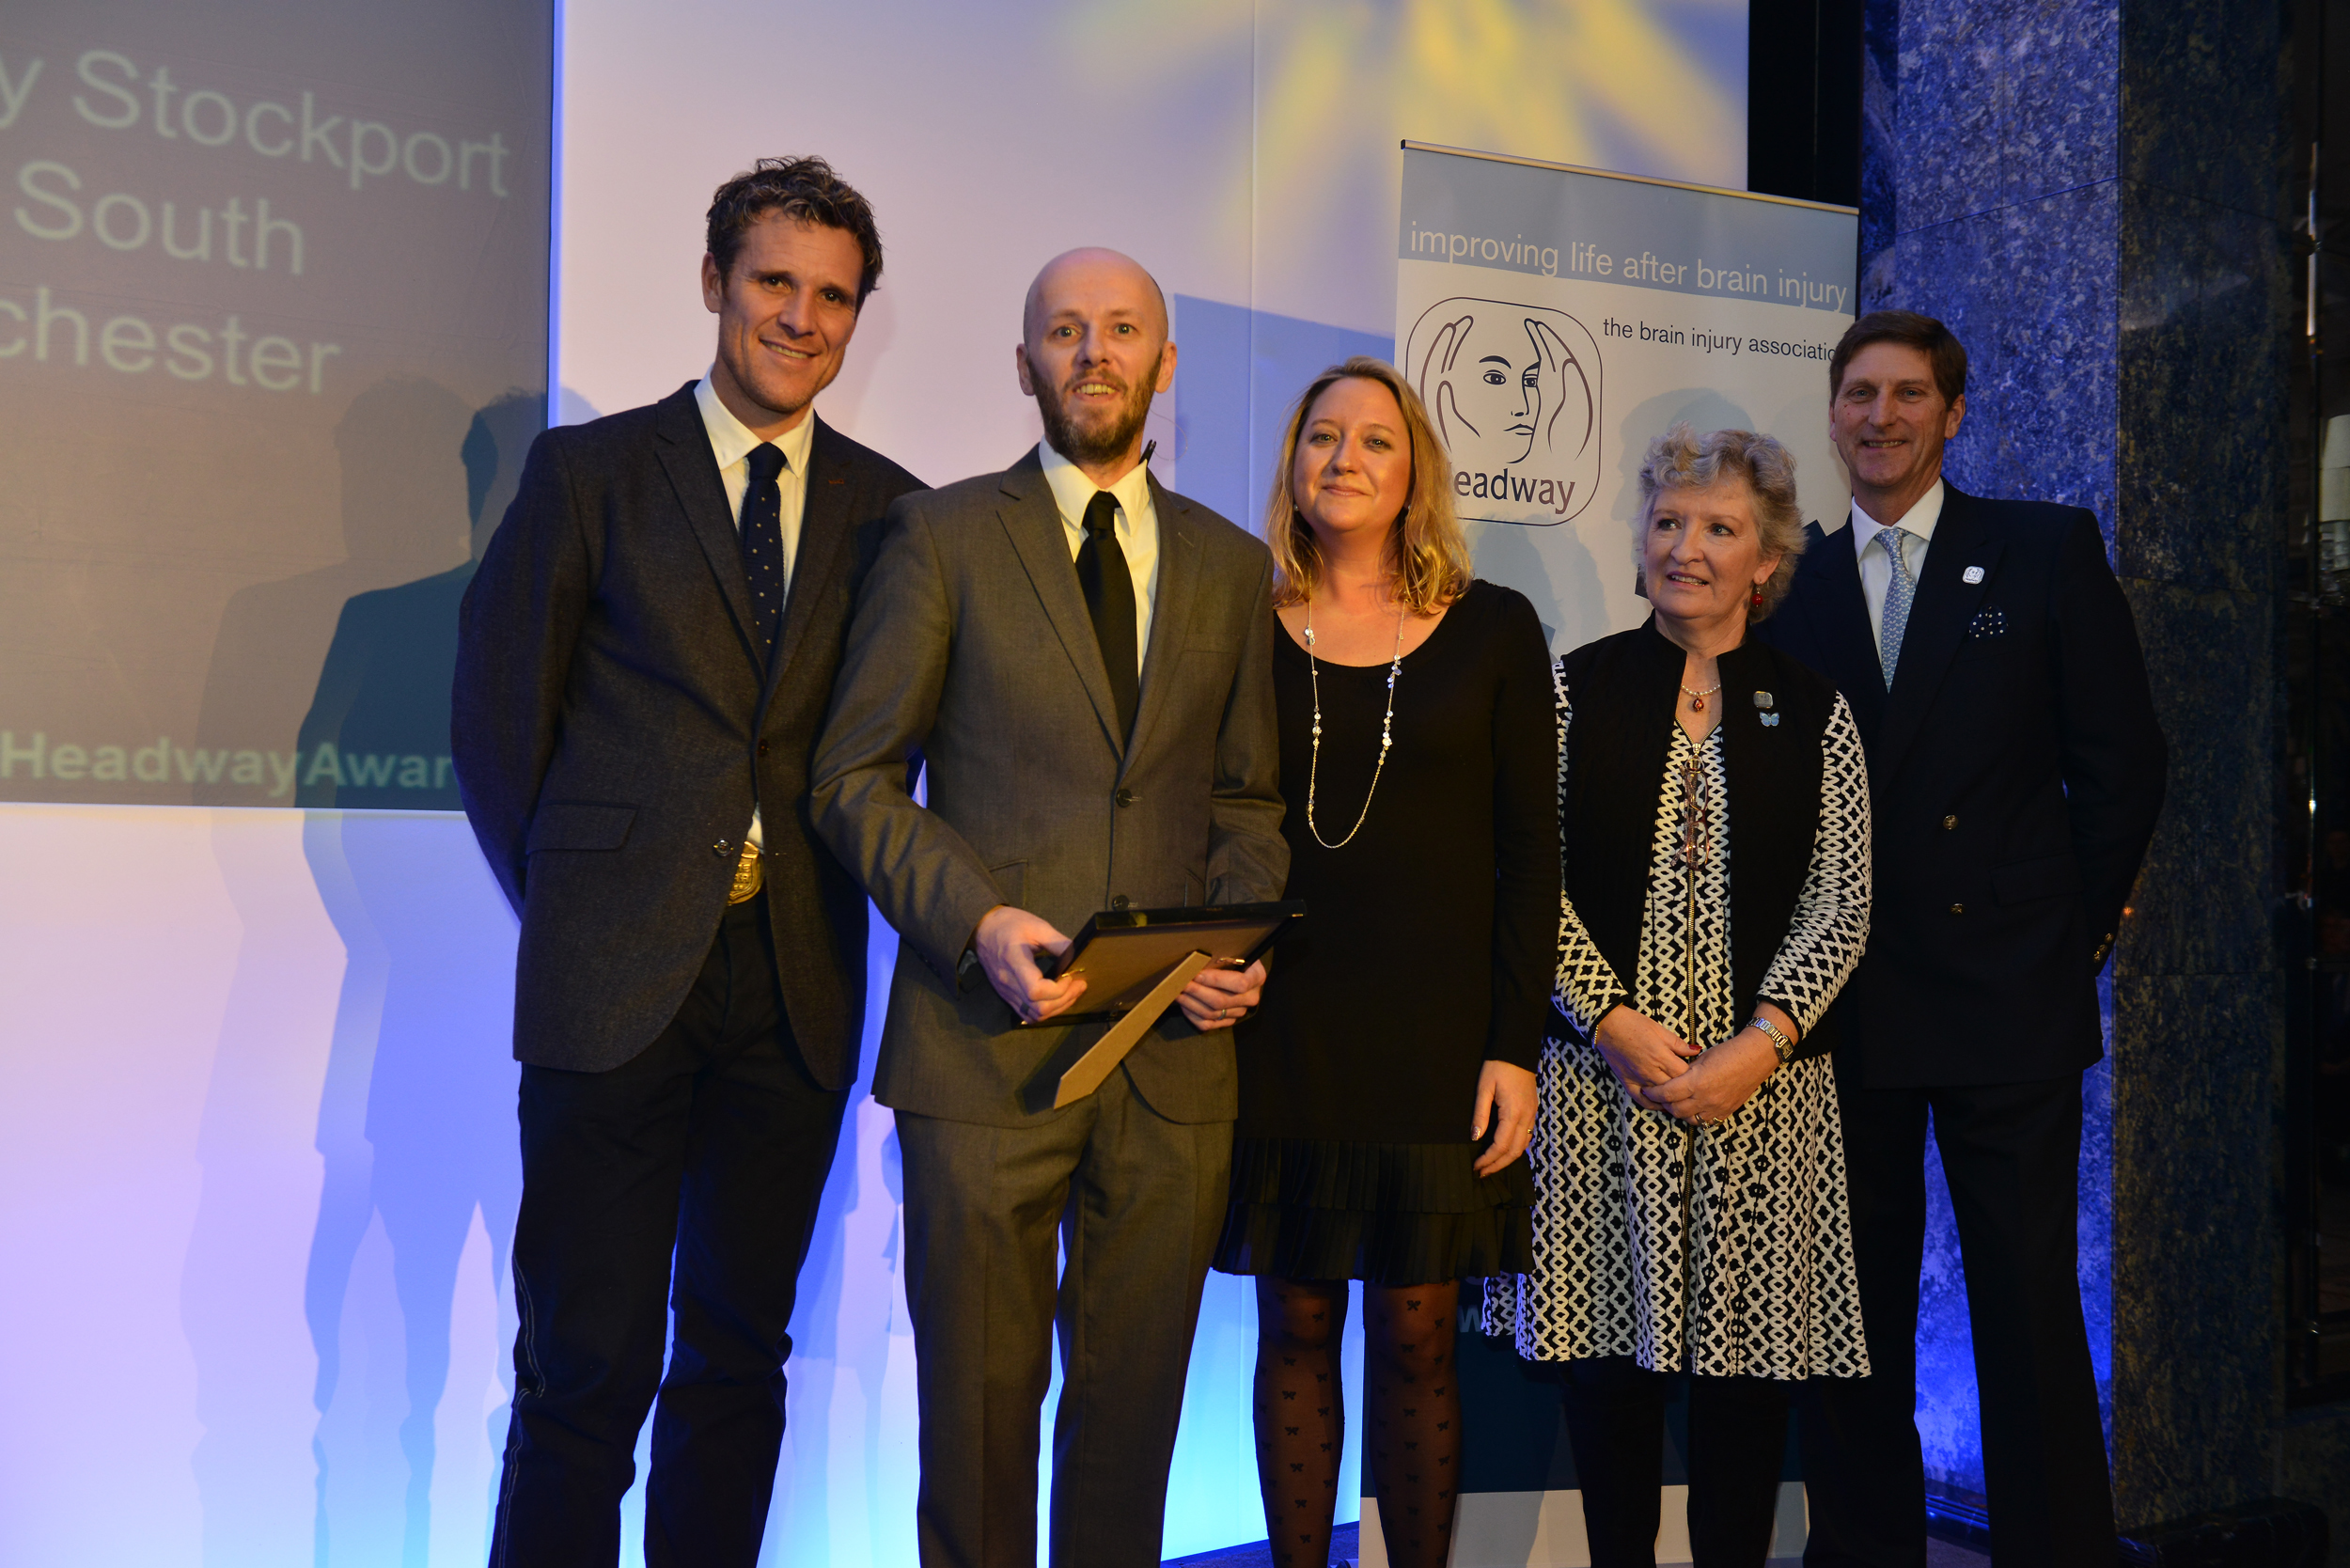 Steven Lomas (second from left) collects his award